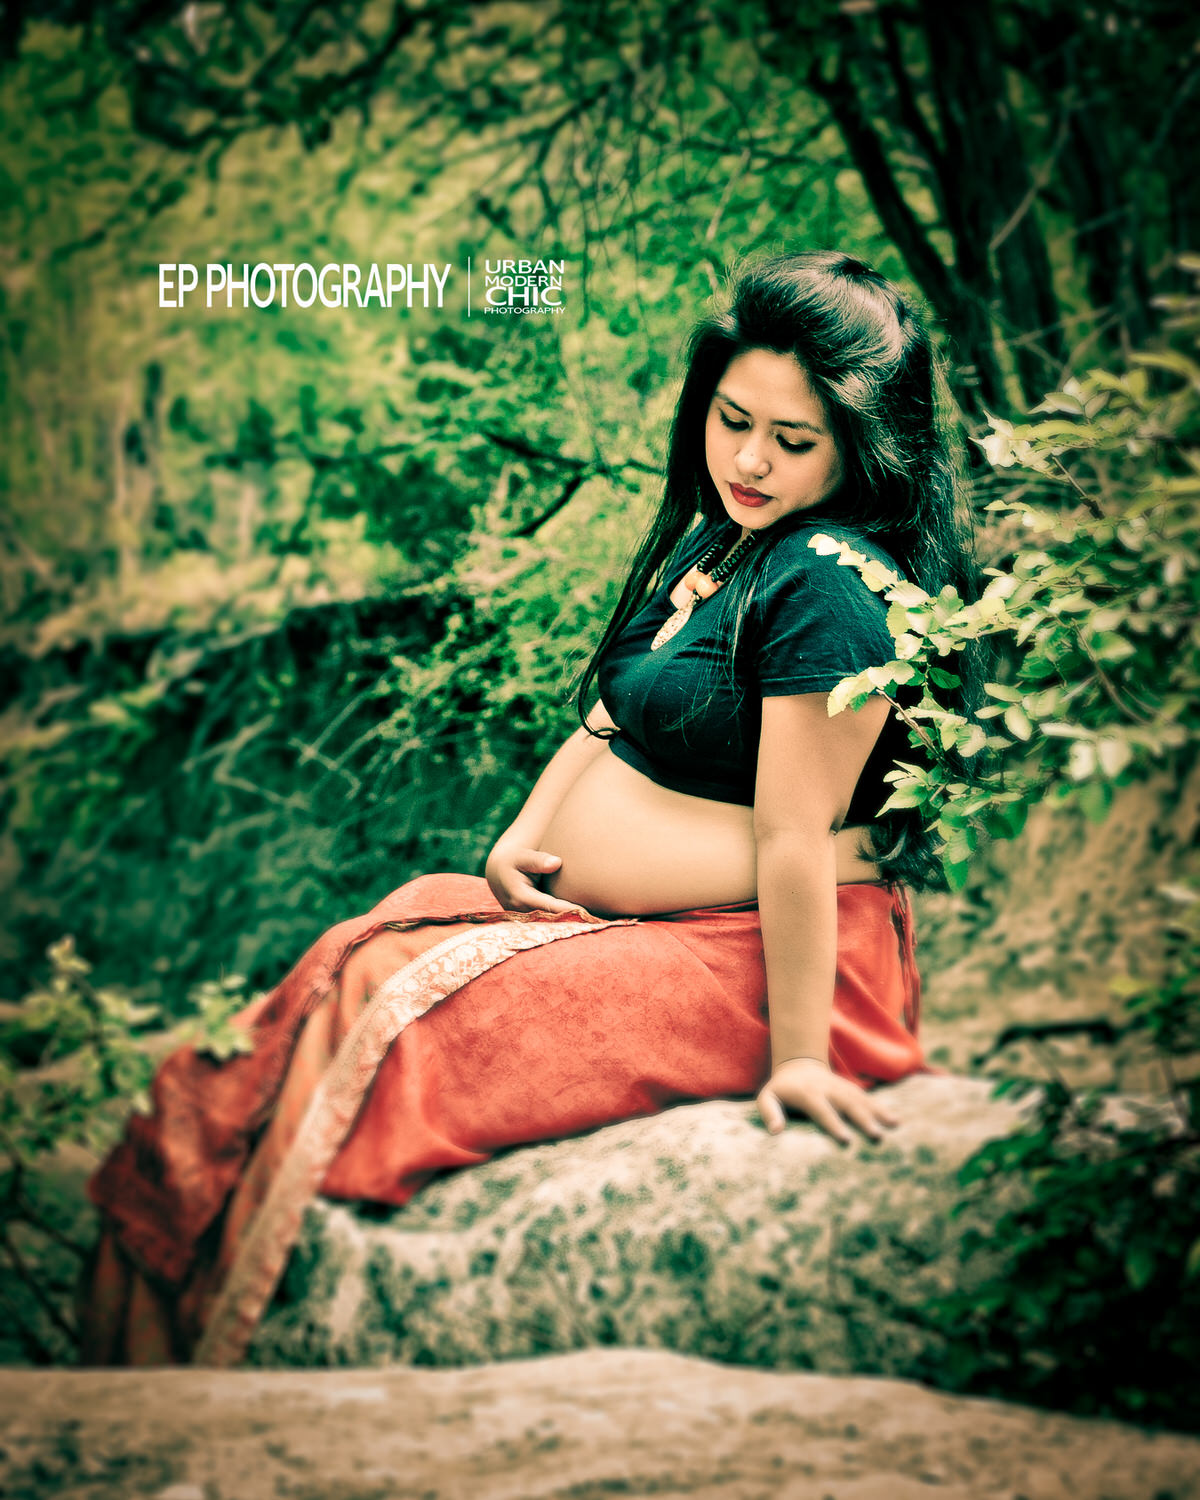 Maternity Session - EP Photography